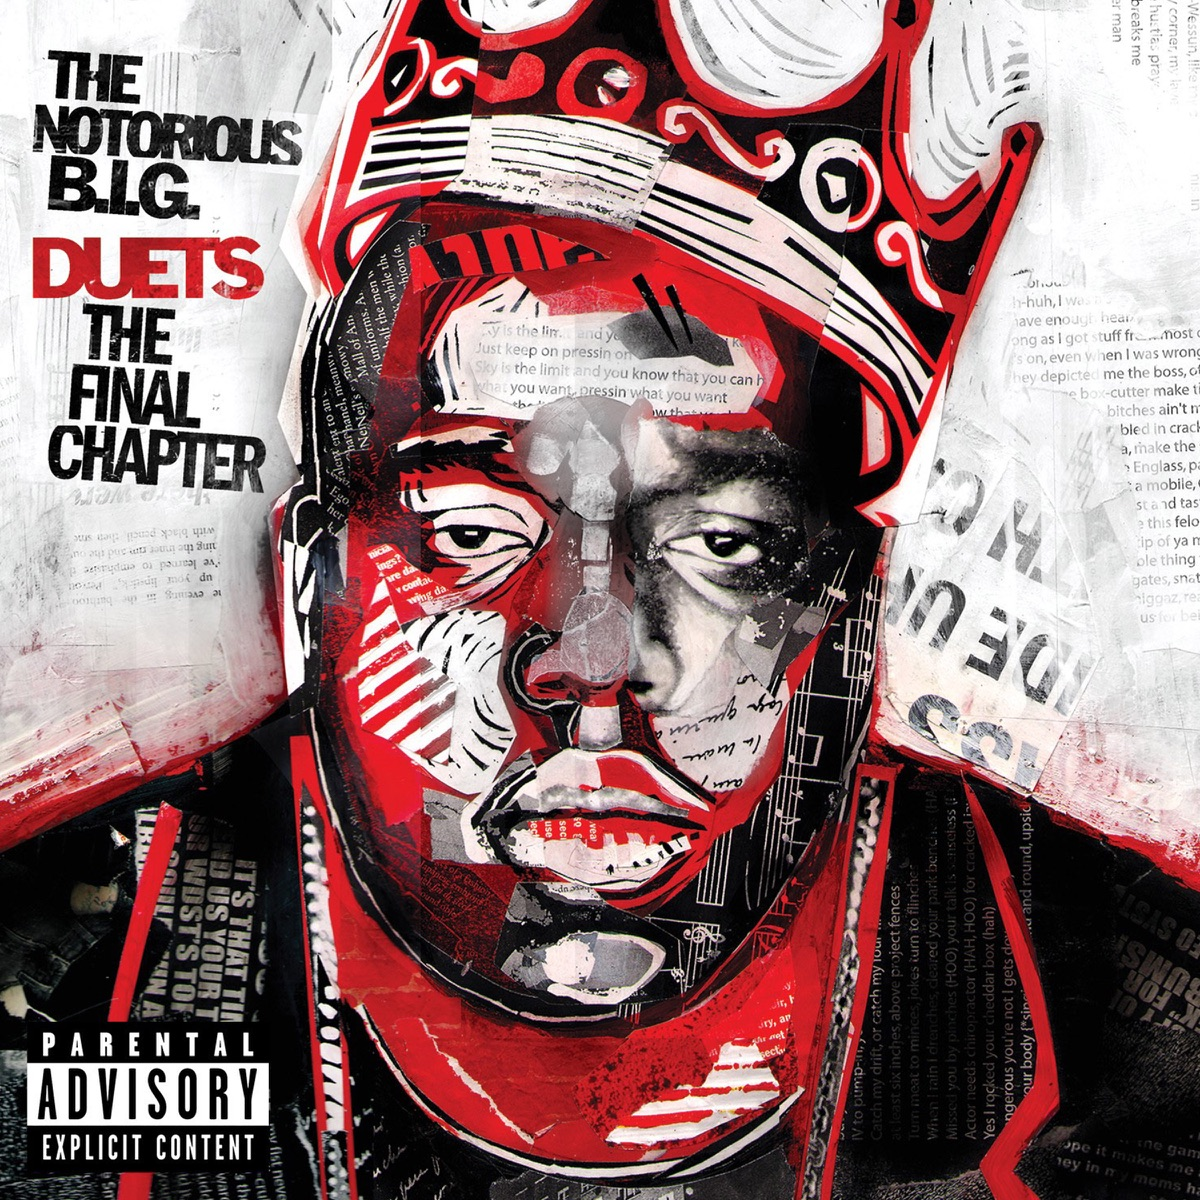 Duets The Final Chapter The Notorious BIG CD cover